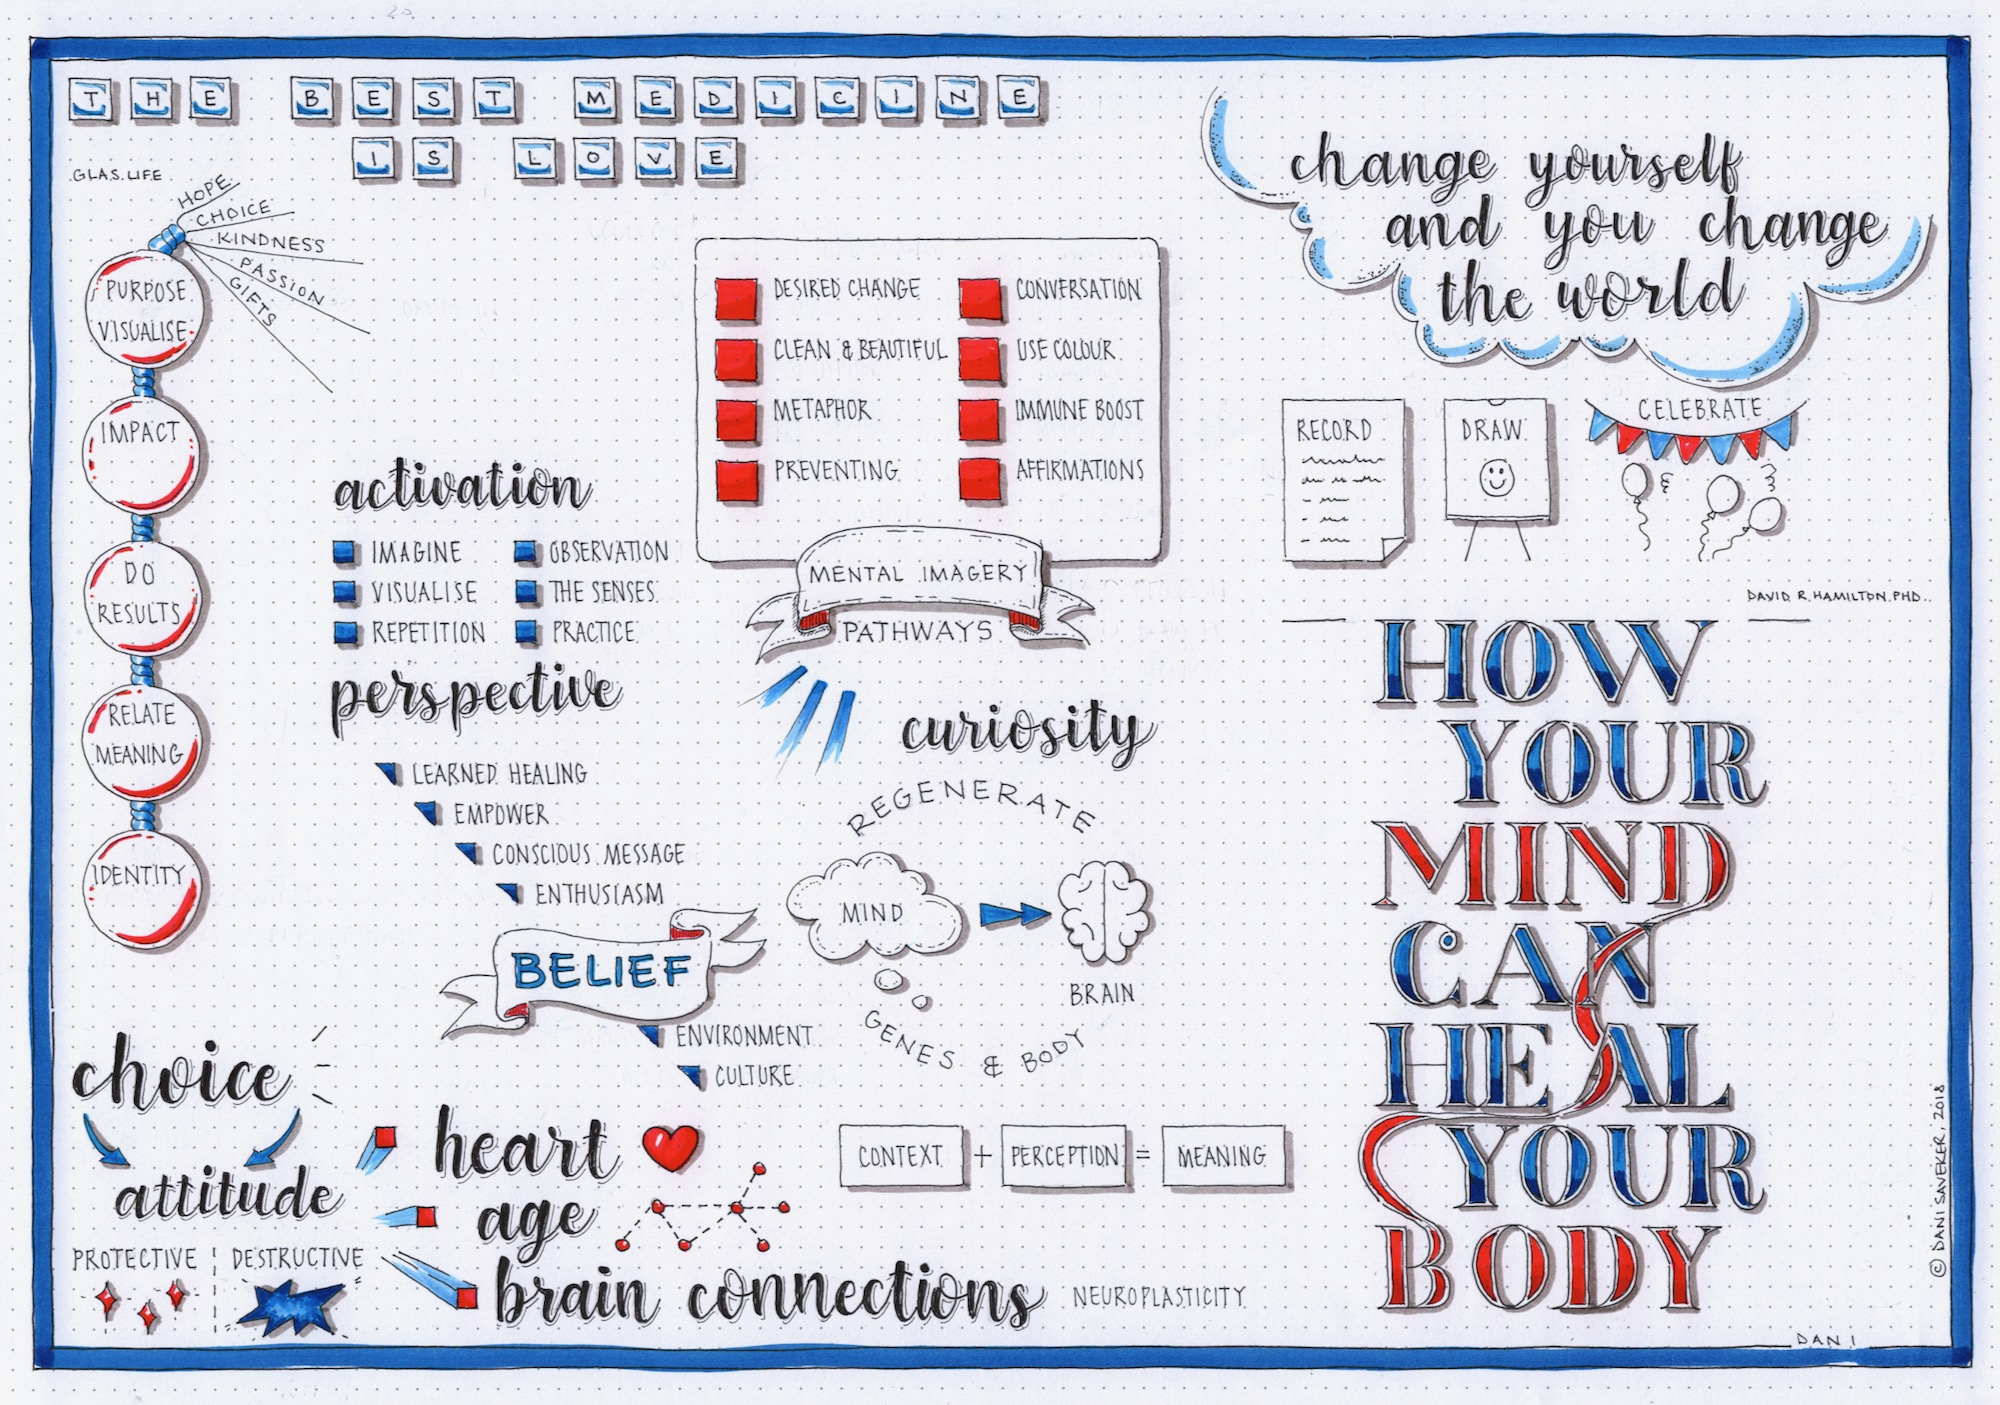 How Your Mind Can Heal Your Body (David R Hamilton)